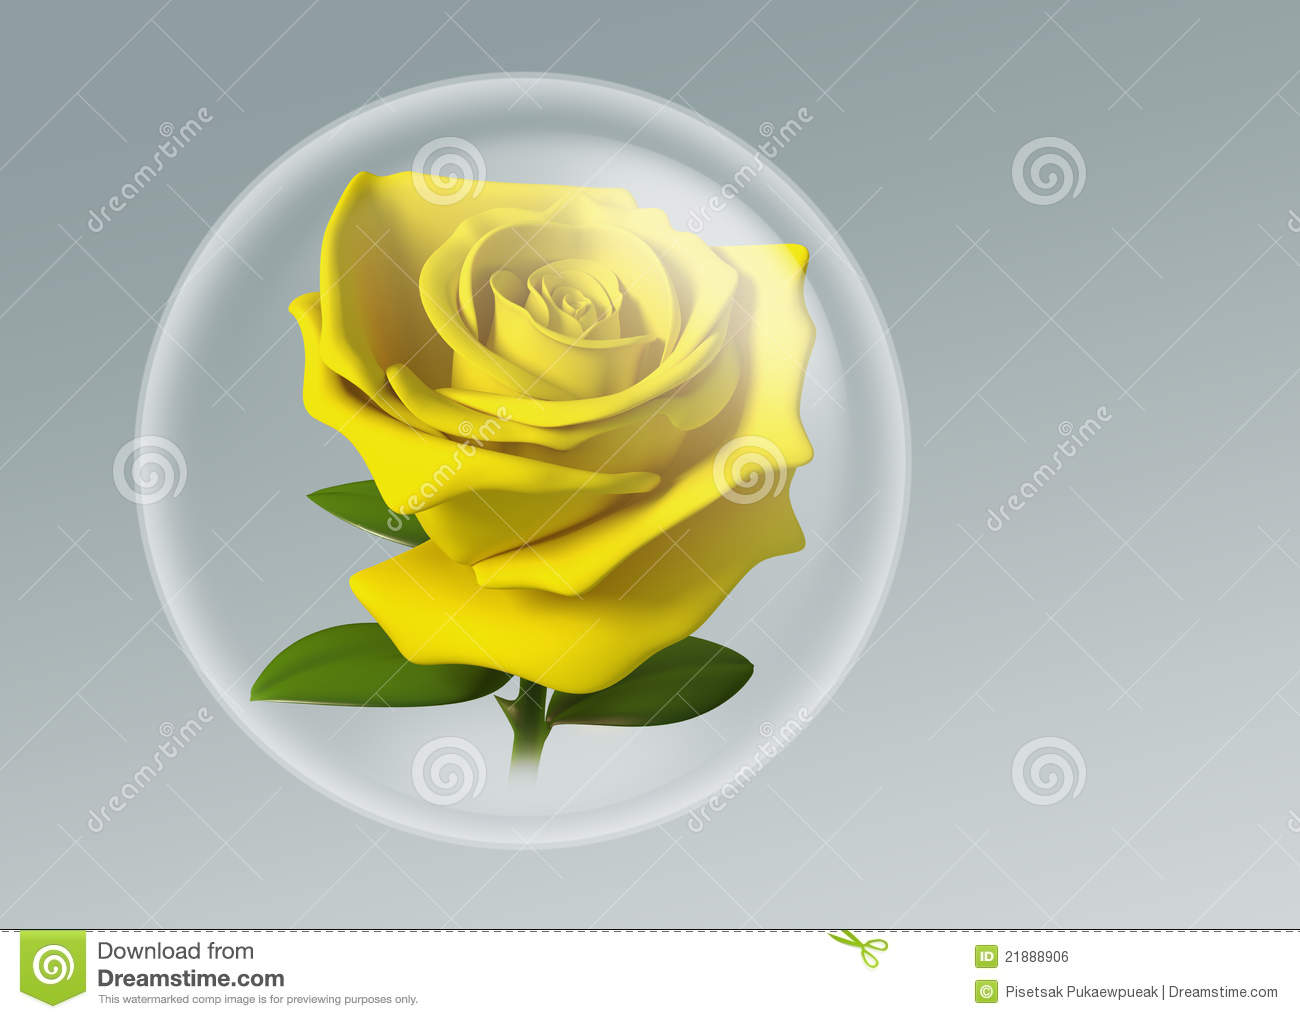 3d yellow rose in glass ball stock illustration image 21888906. Black Bedroom Furniture Sets. Home Design Ideas